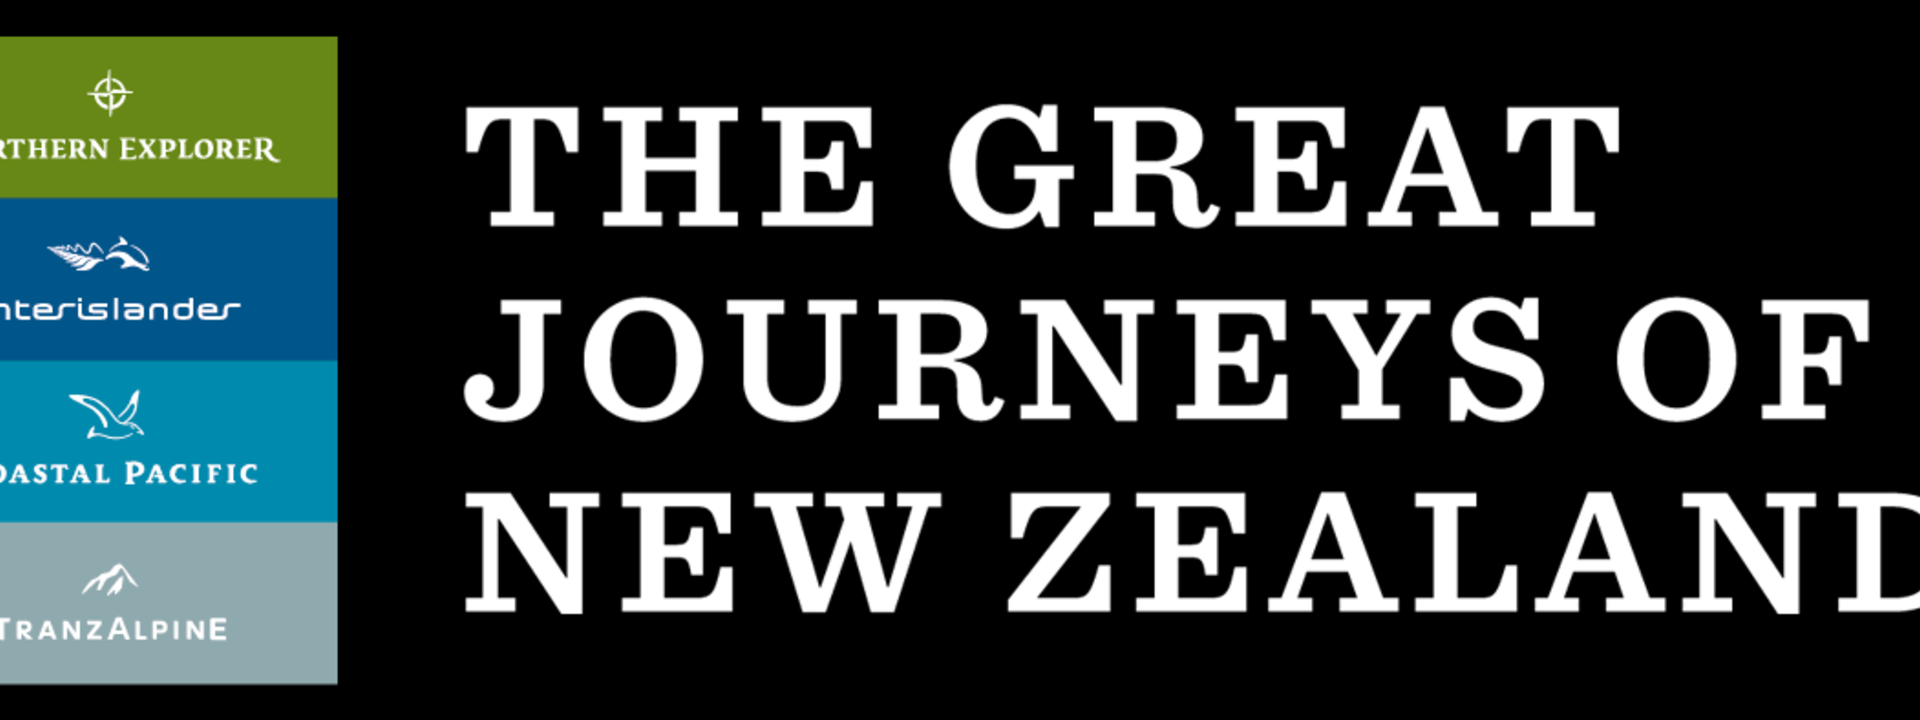 Logo: The Great Journeys of New Zealand